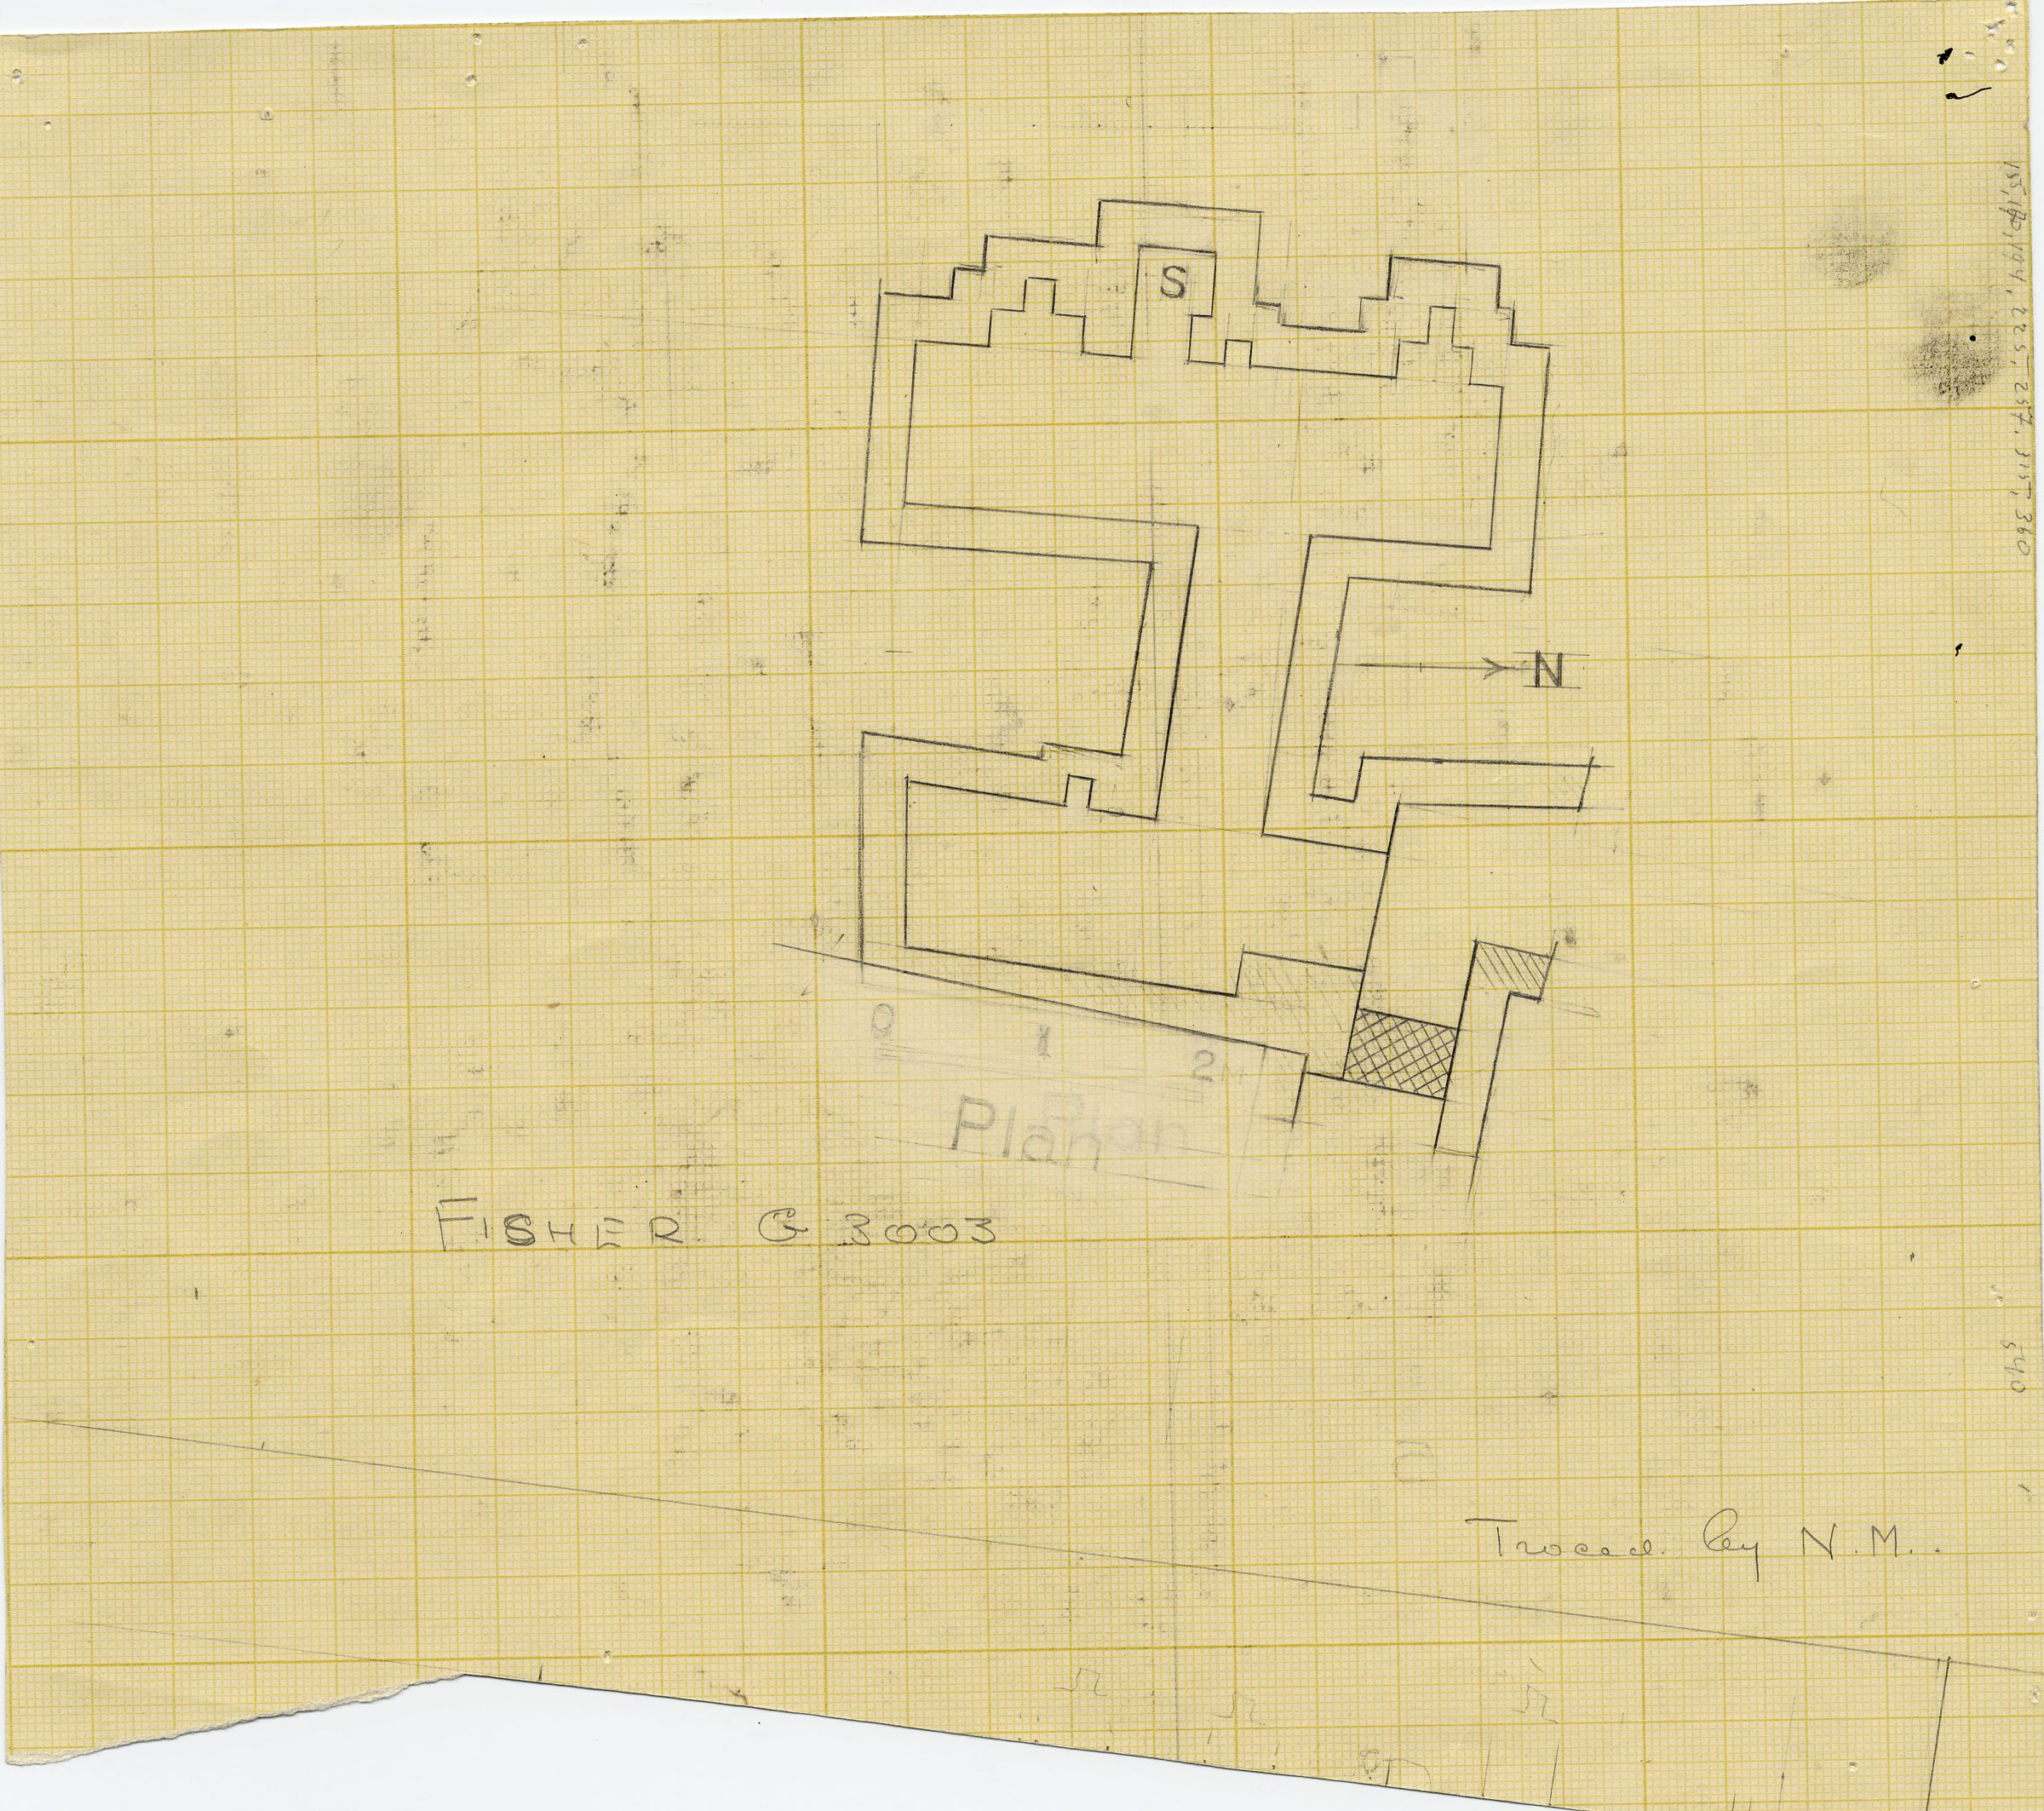 Maps and plans: G 3003, Plan